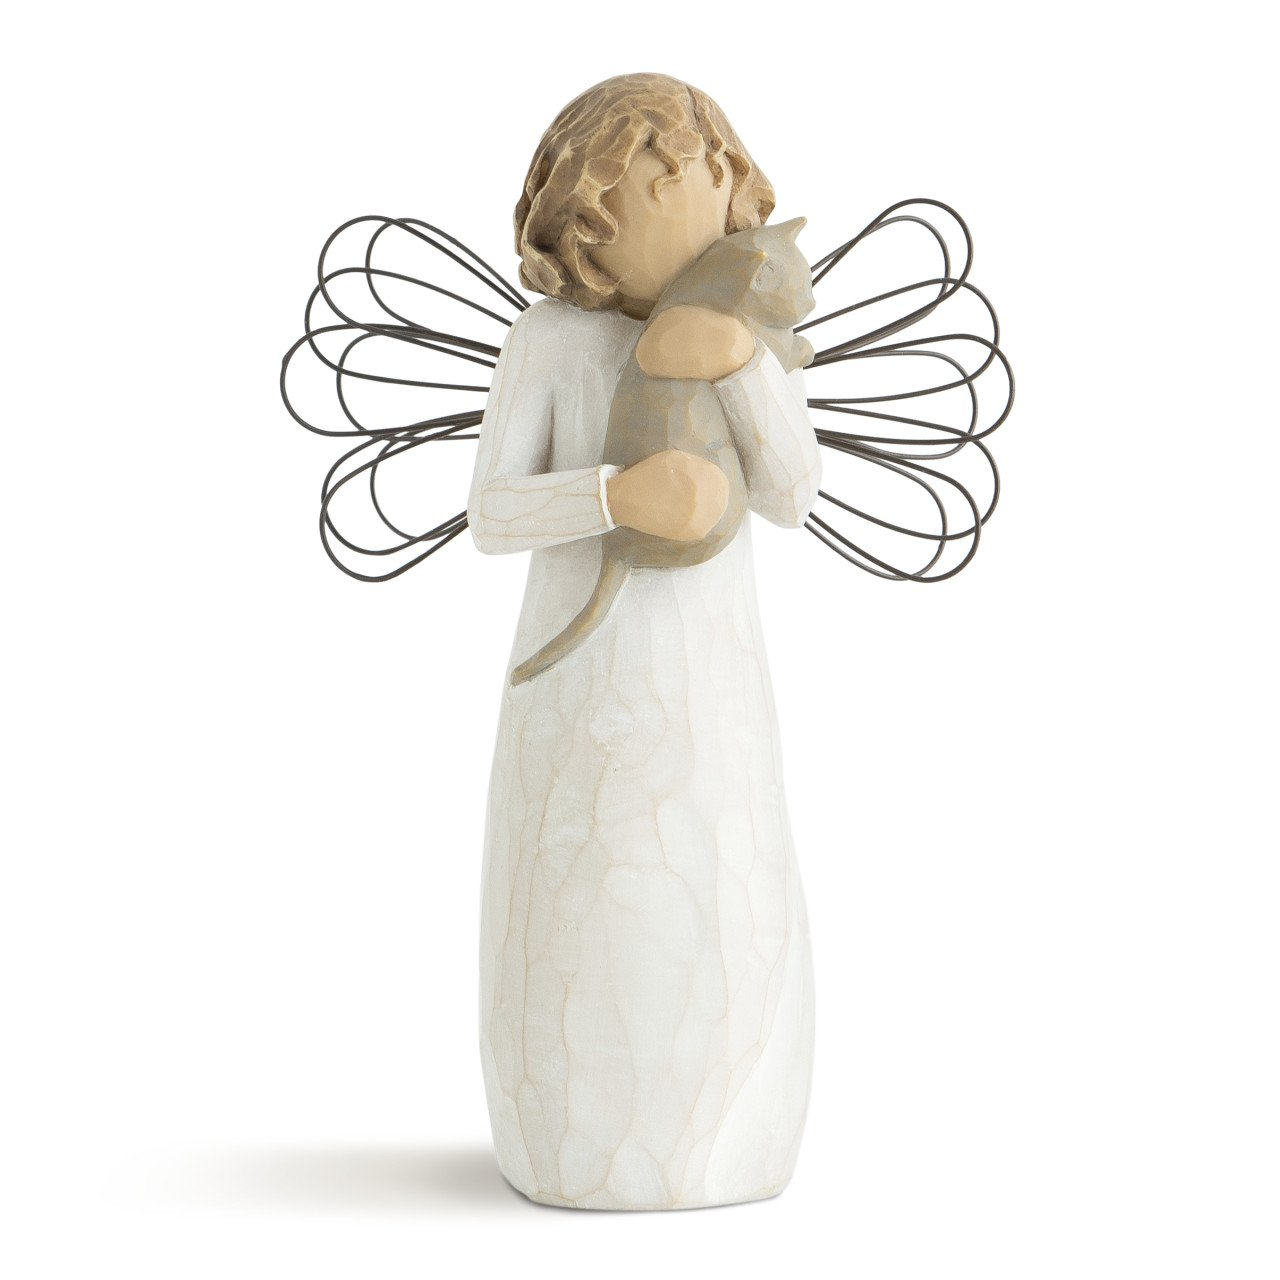 Willow Tree hand-painted sculpted angel, With affection by Willow Tree